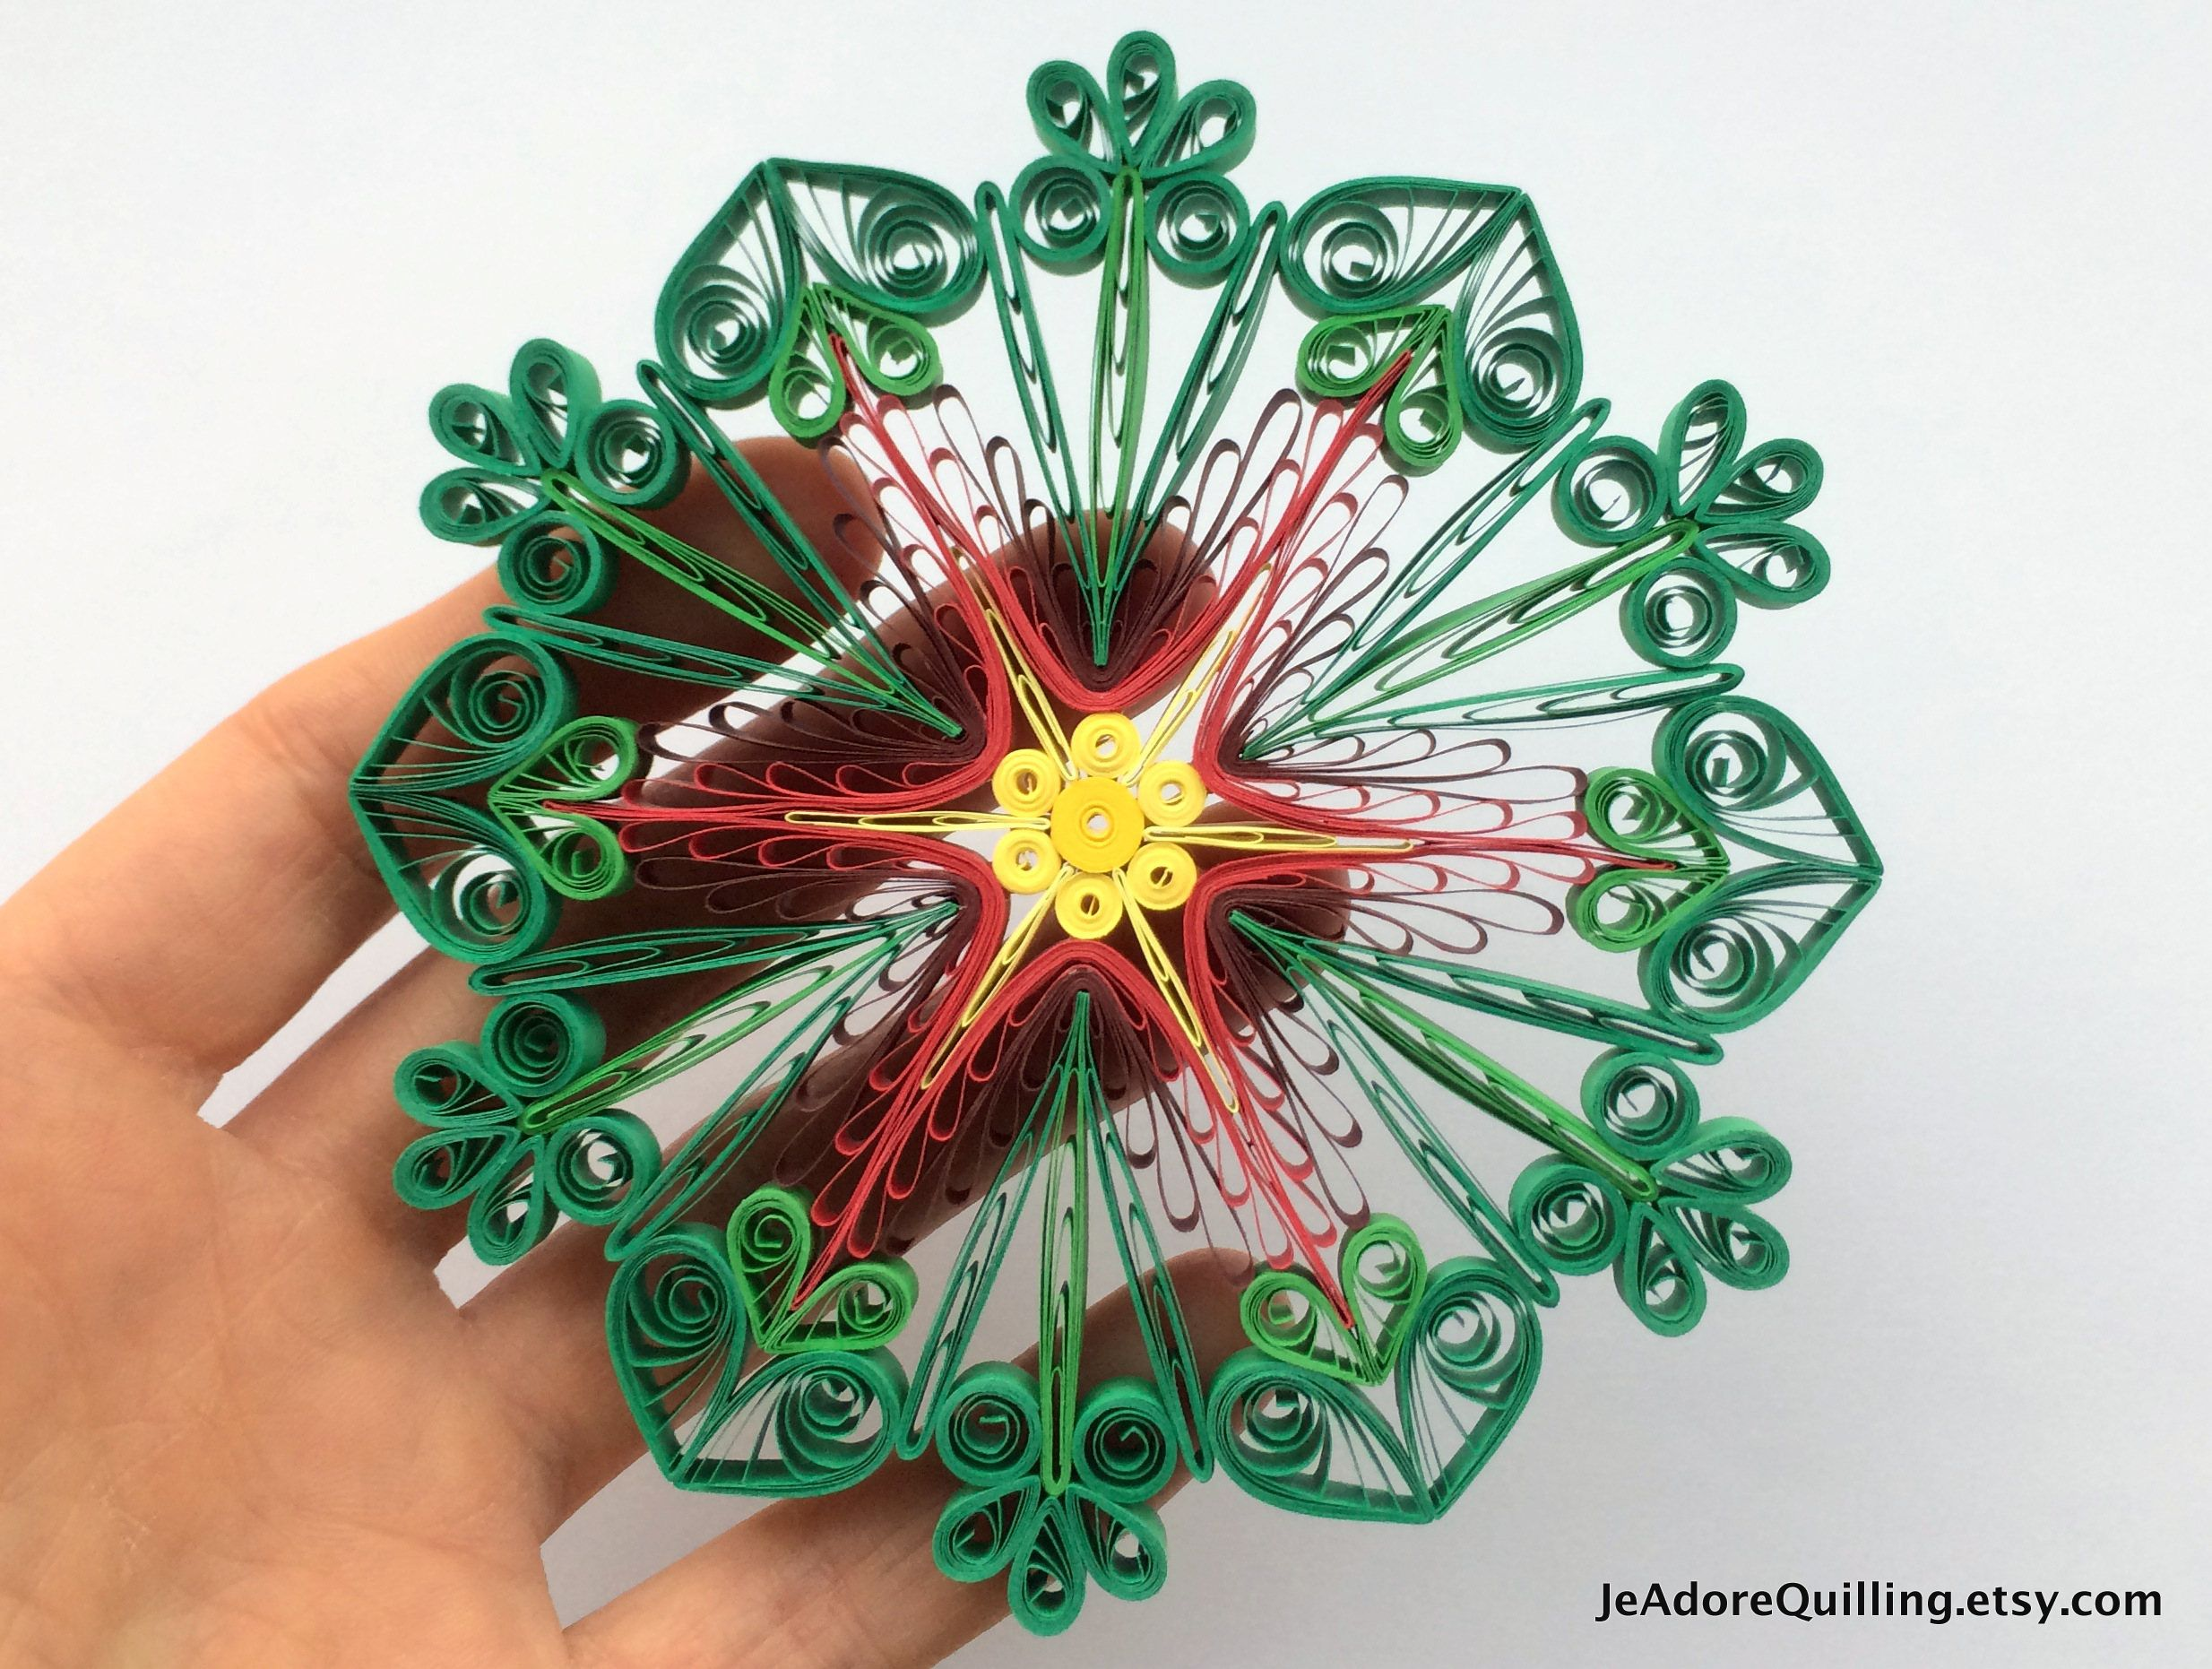 Snowflake Poinsettia Red Green Christmas Tree Decoration Winter Ornaments Gifts